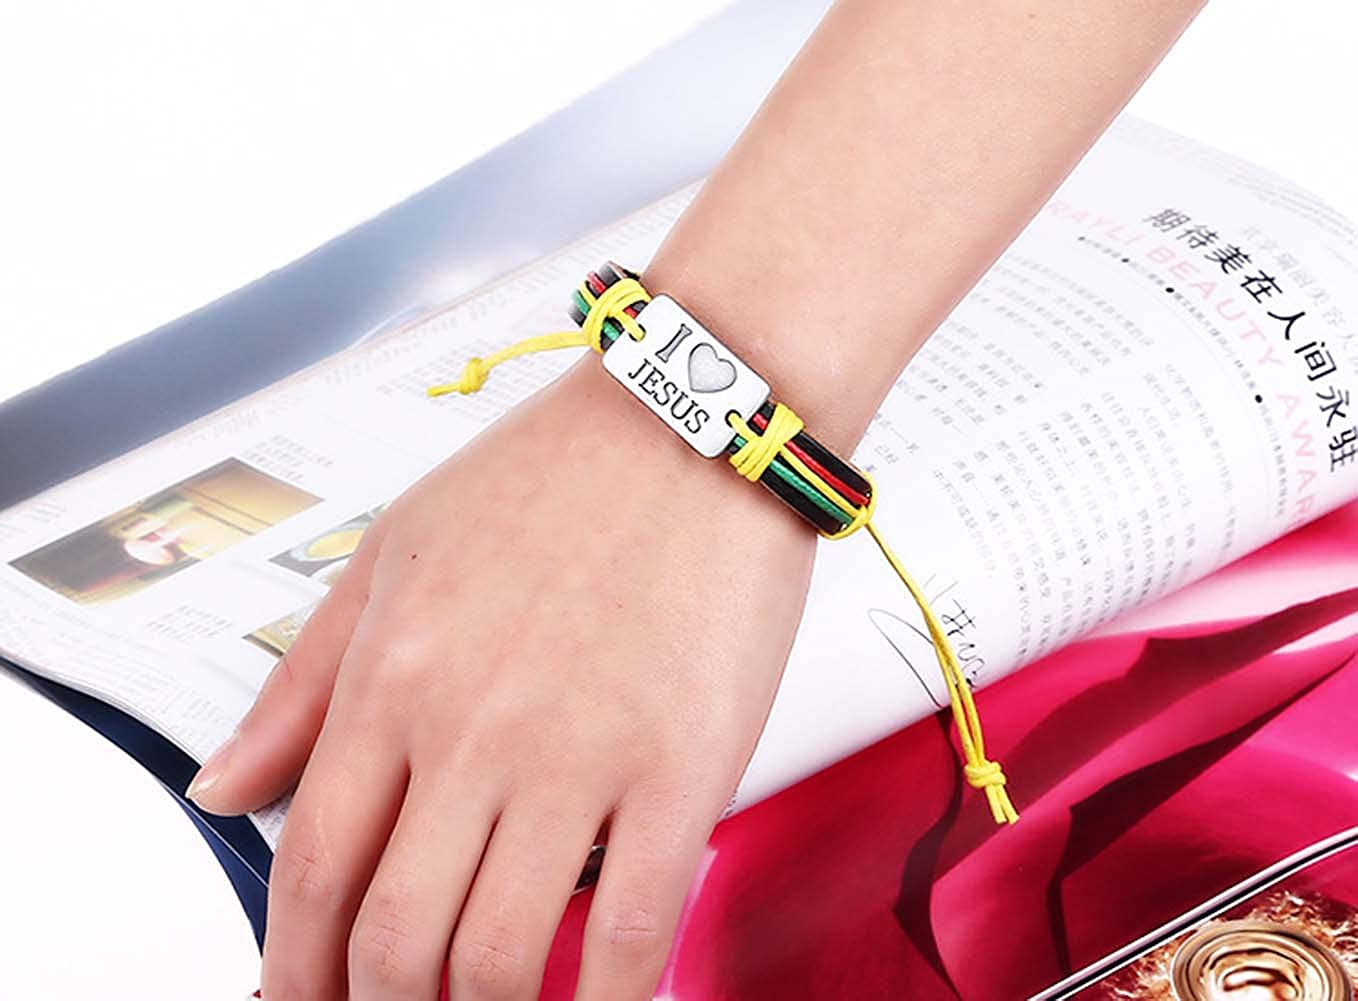 Amazon.com: I love Jesus red green yellow woven leather lucky ...